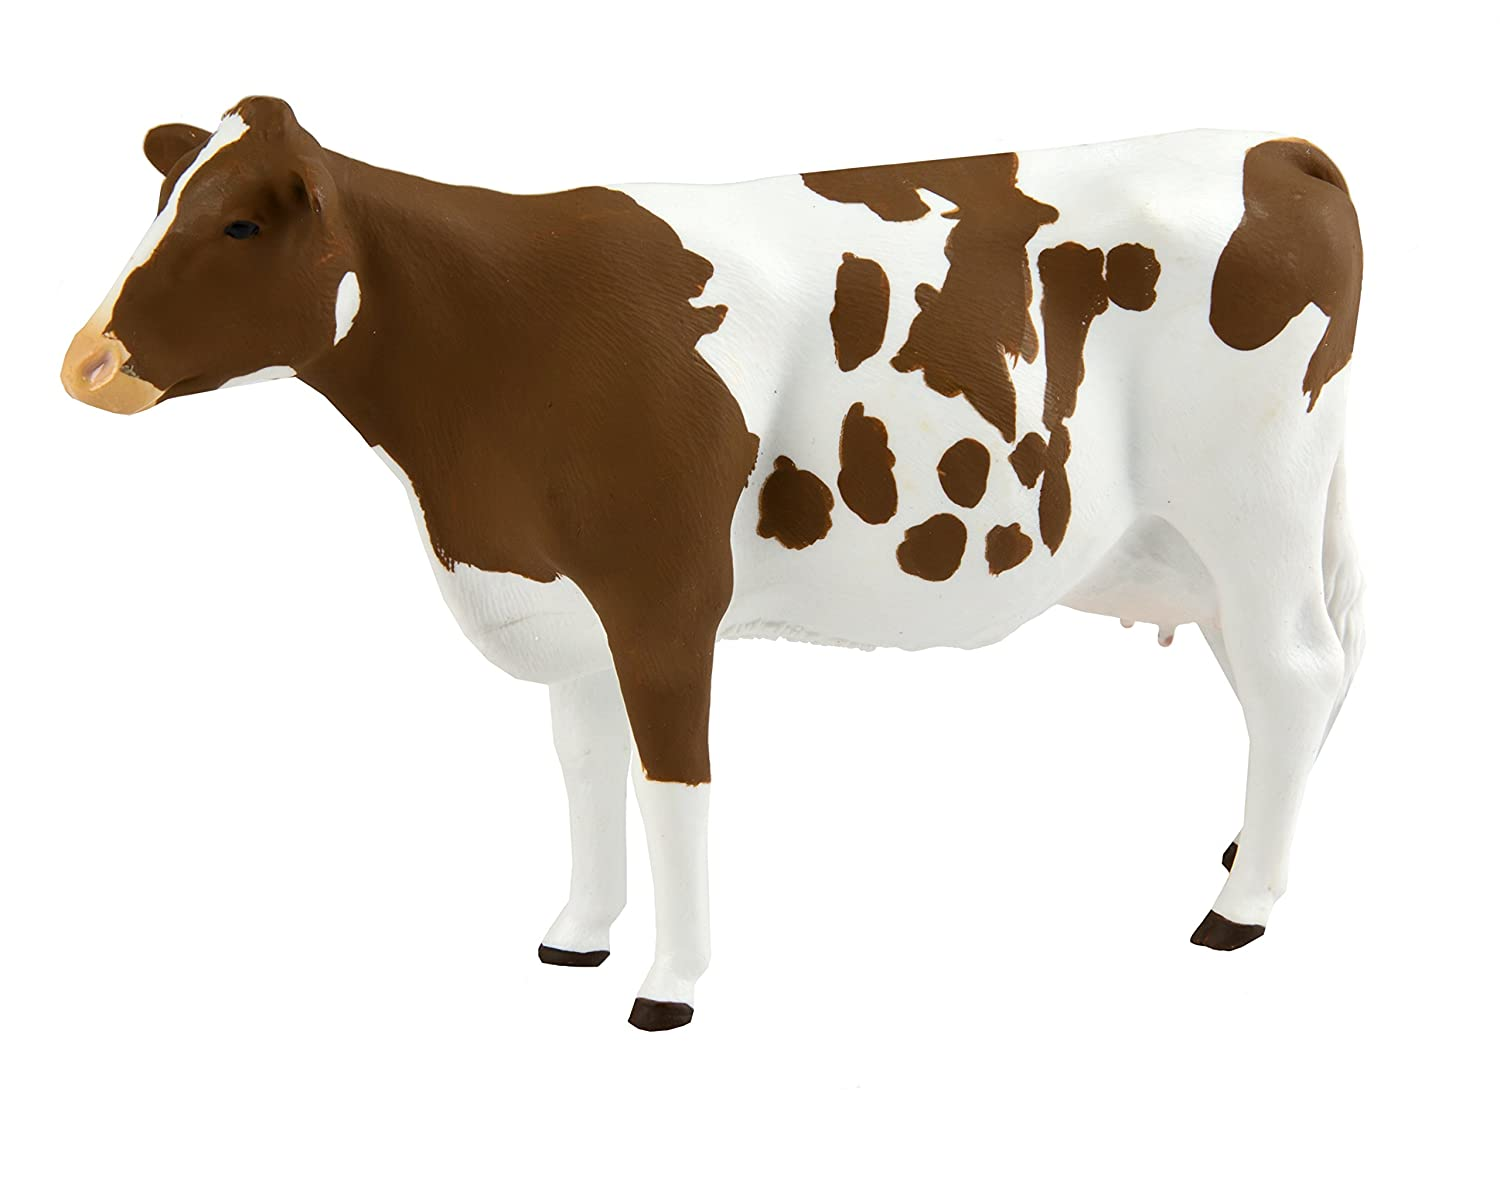 Safari Ltd. Ayrshire Cow ? Realistic Hand Painted Toy Figurine Model ? Quality Construction from Phthalate, Lead and BPA Free Materials ? For Ages 3 and Up